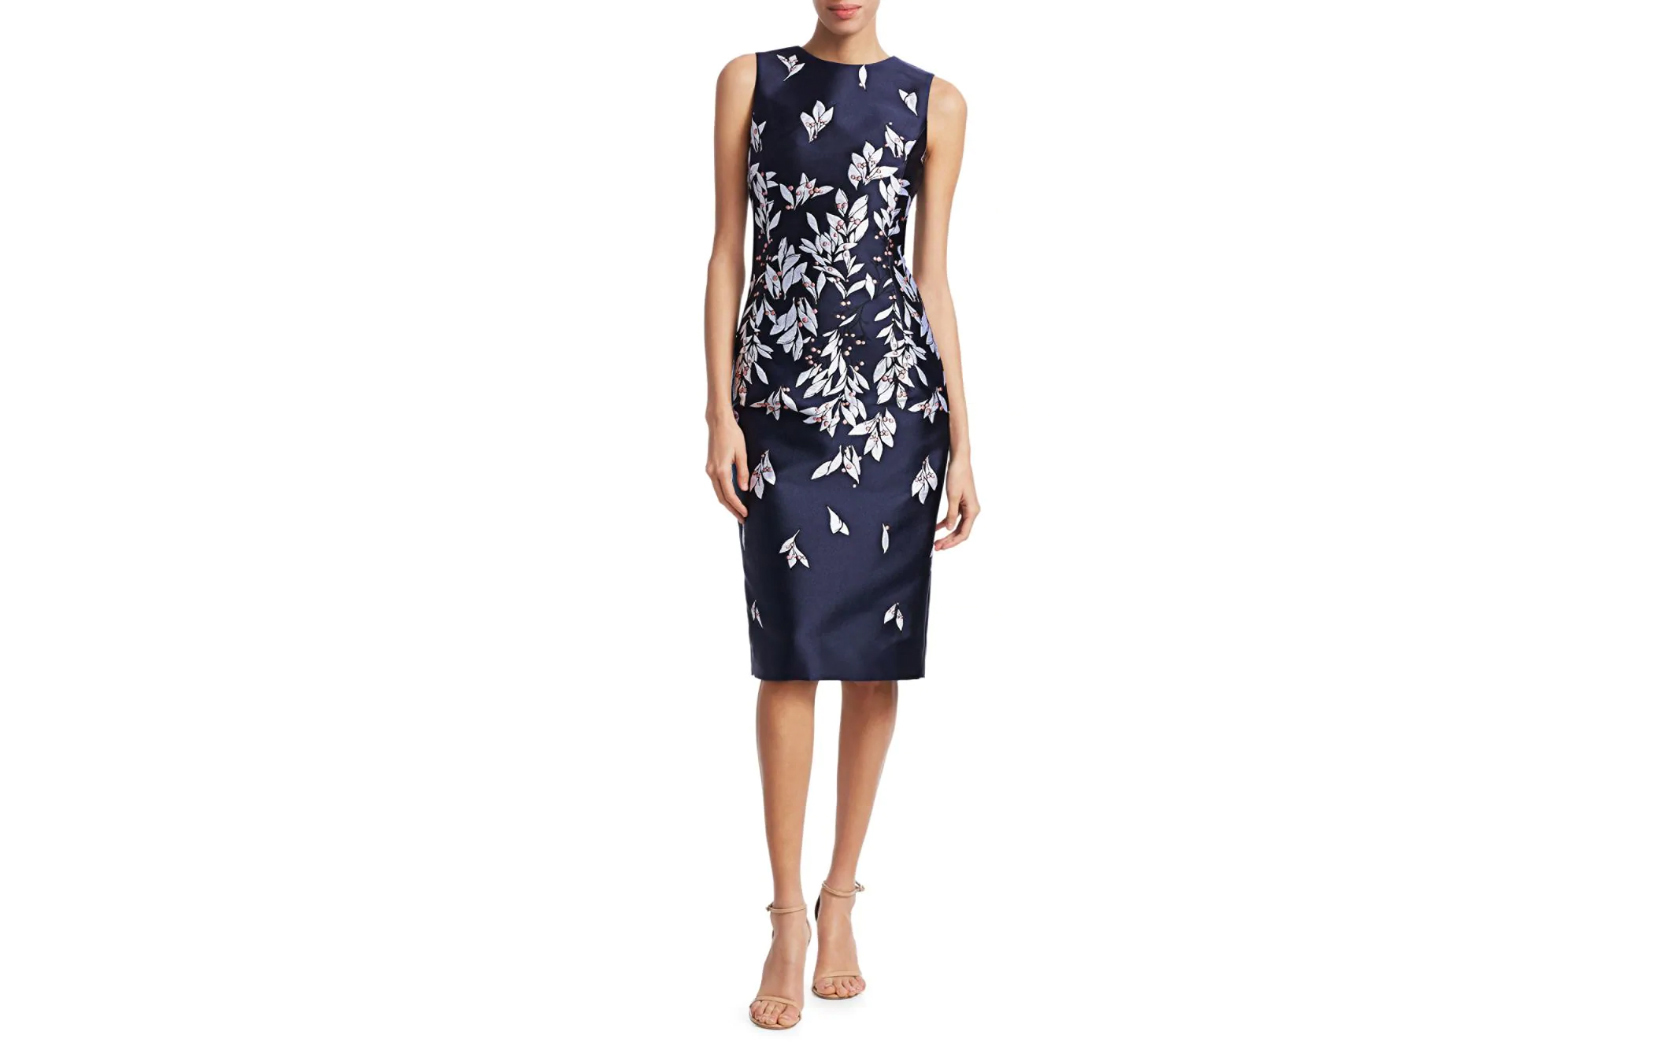 Oscar de la Renta Embroidered Floral Knee-Length Dress